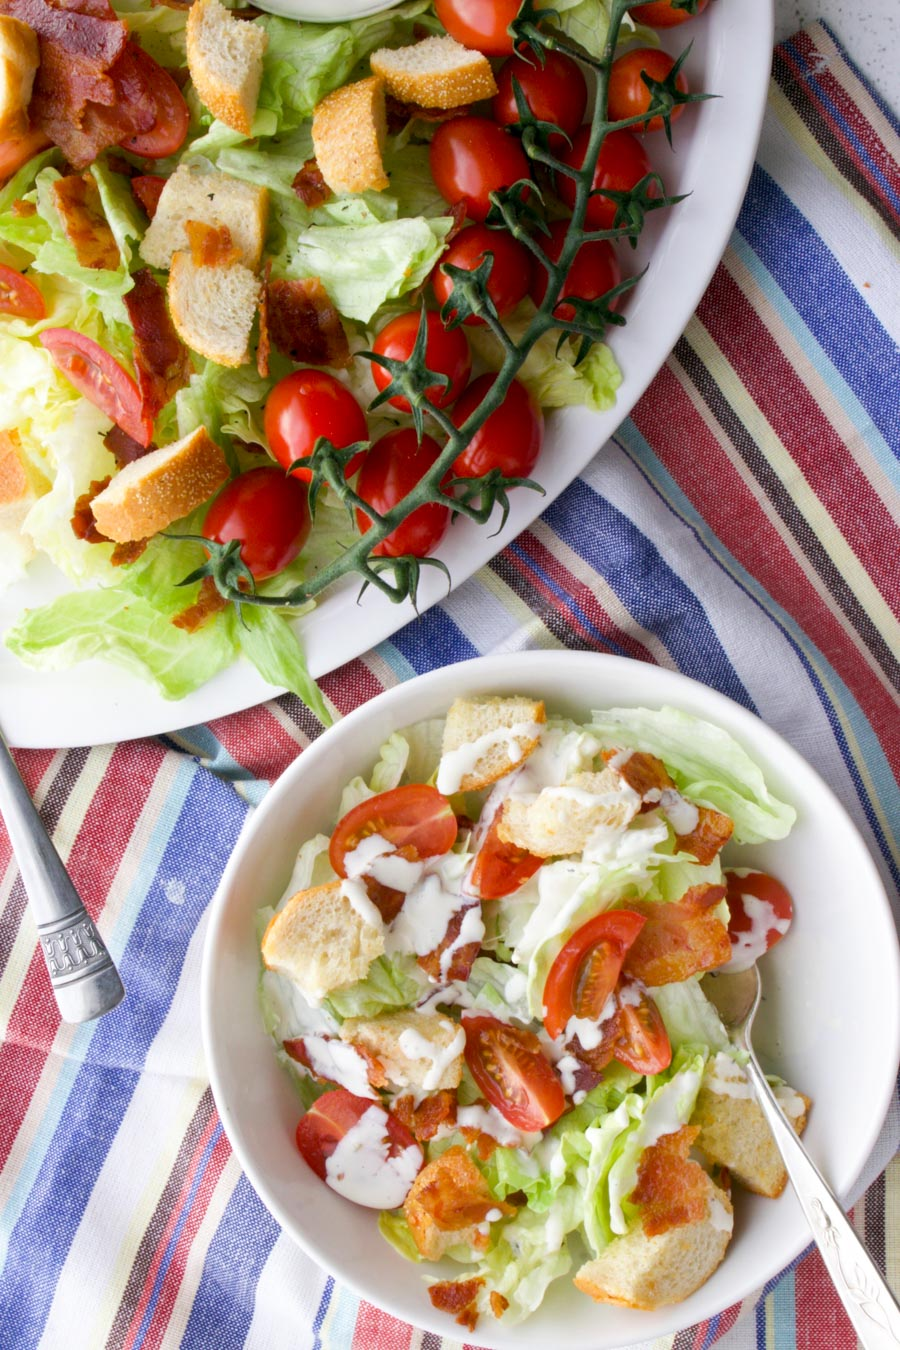 small bowl of salad next to the larger platter of salad sitting on a red, white, blue cloth